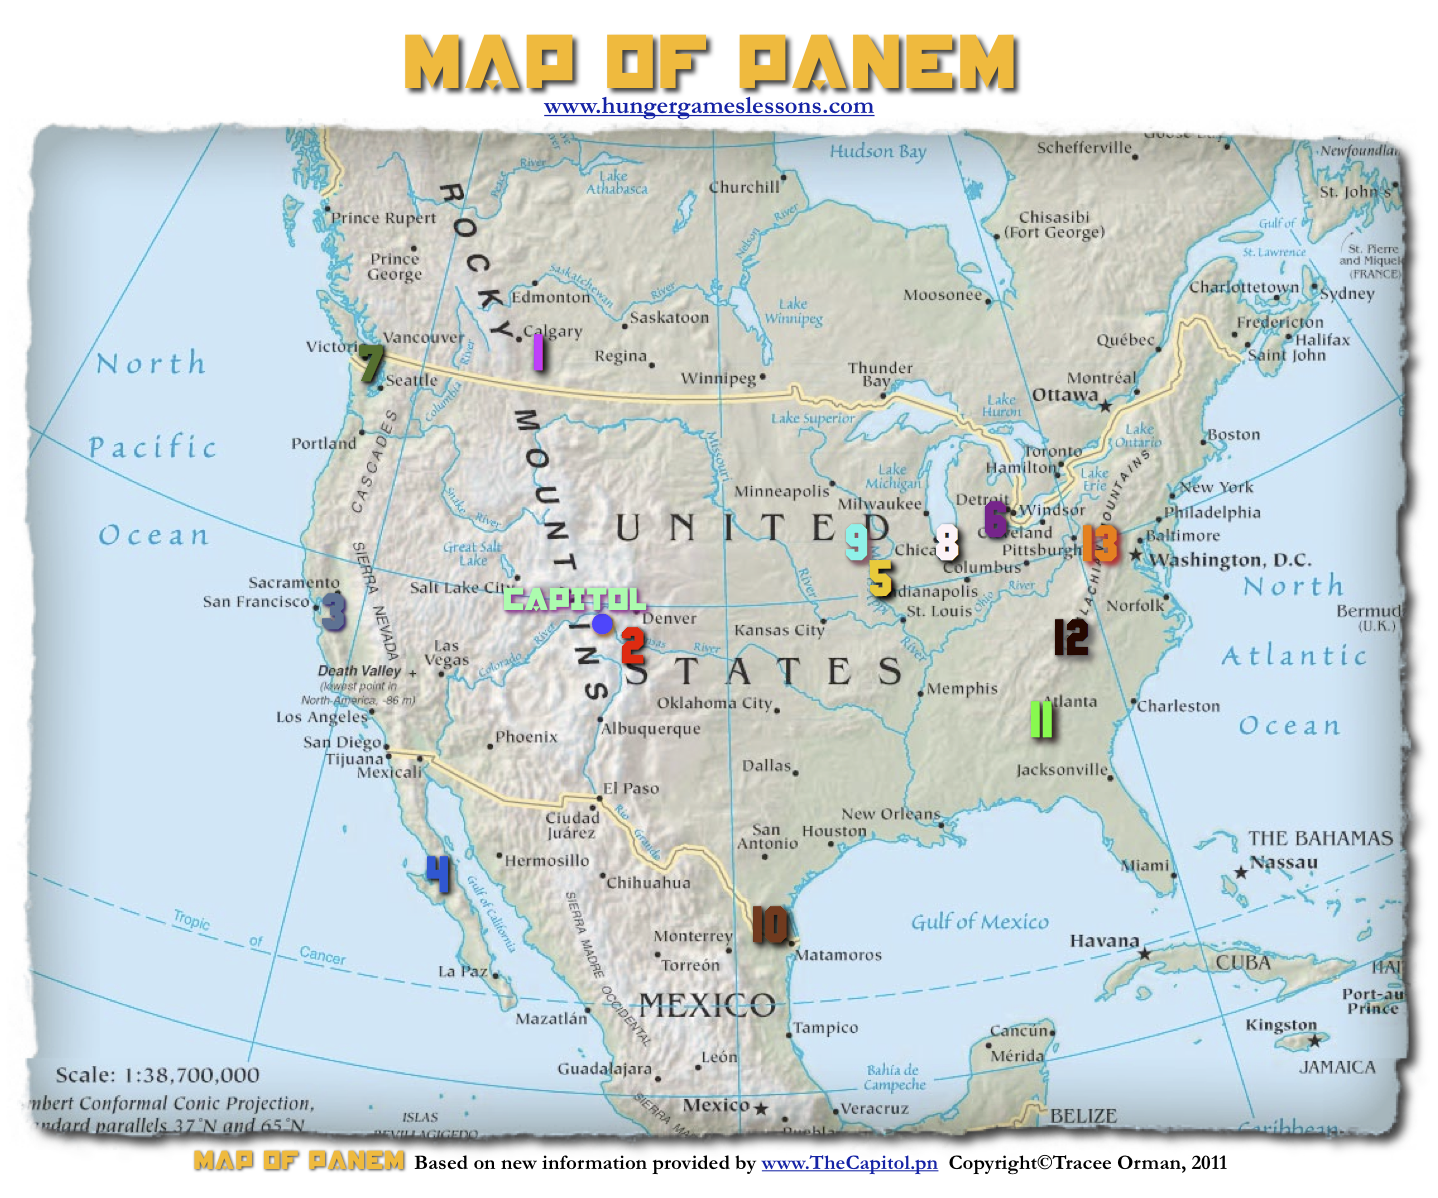 Hunger Games Lessons My Updated Map Of Panem The Hunger